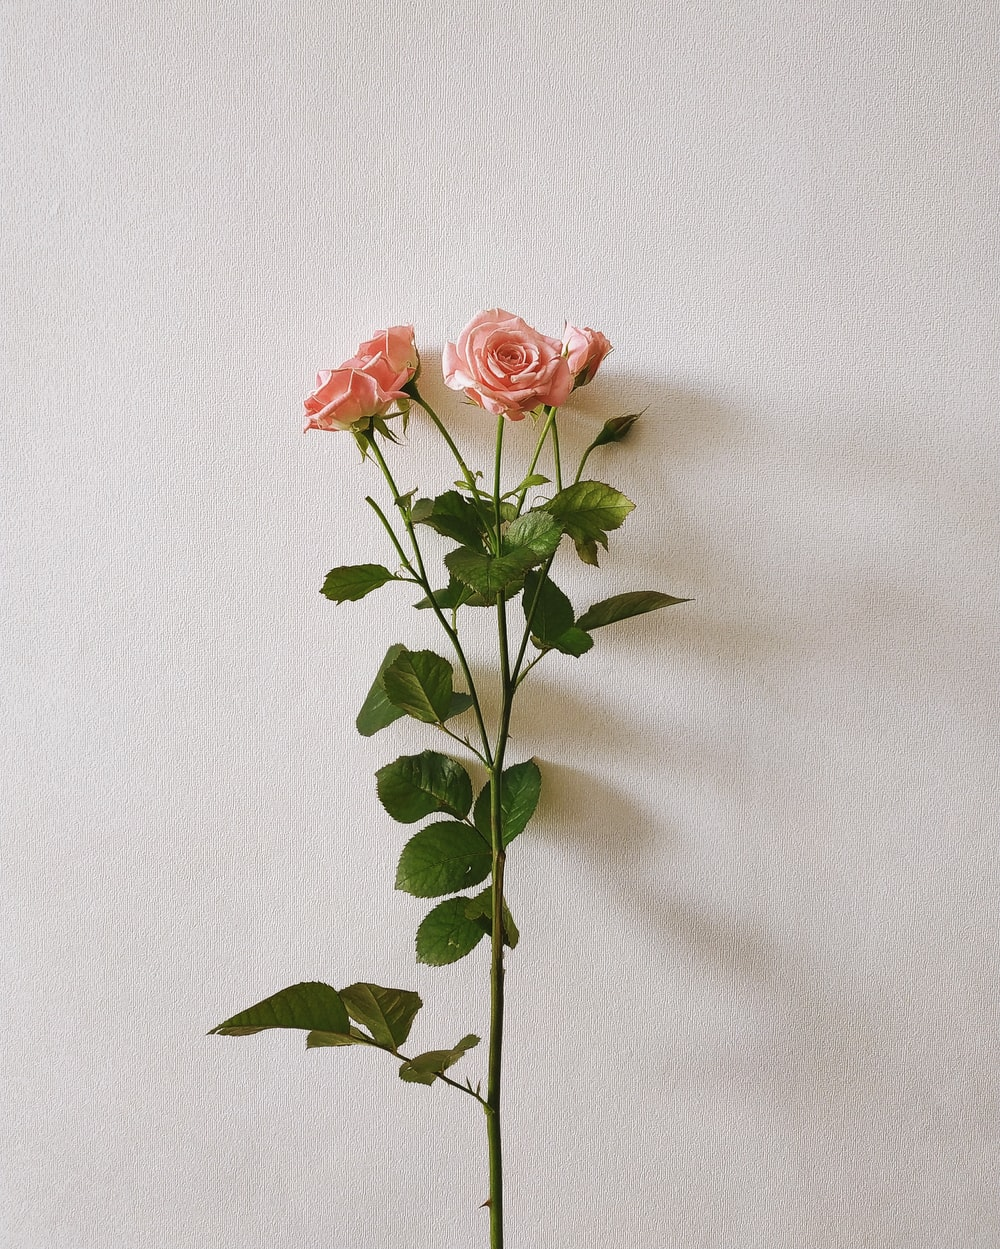 four pink rose flowers